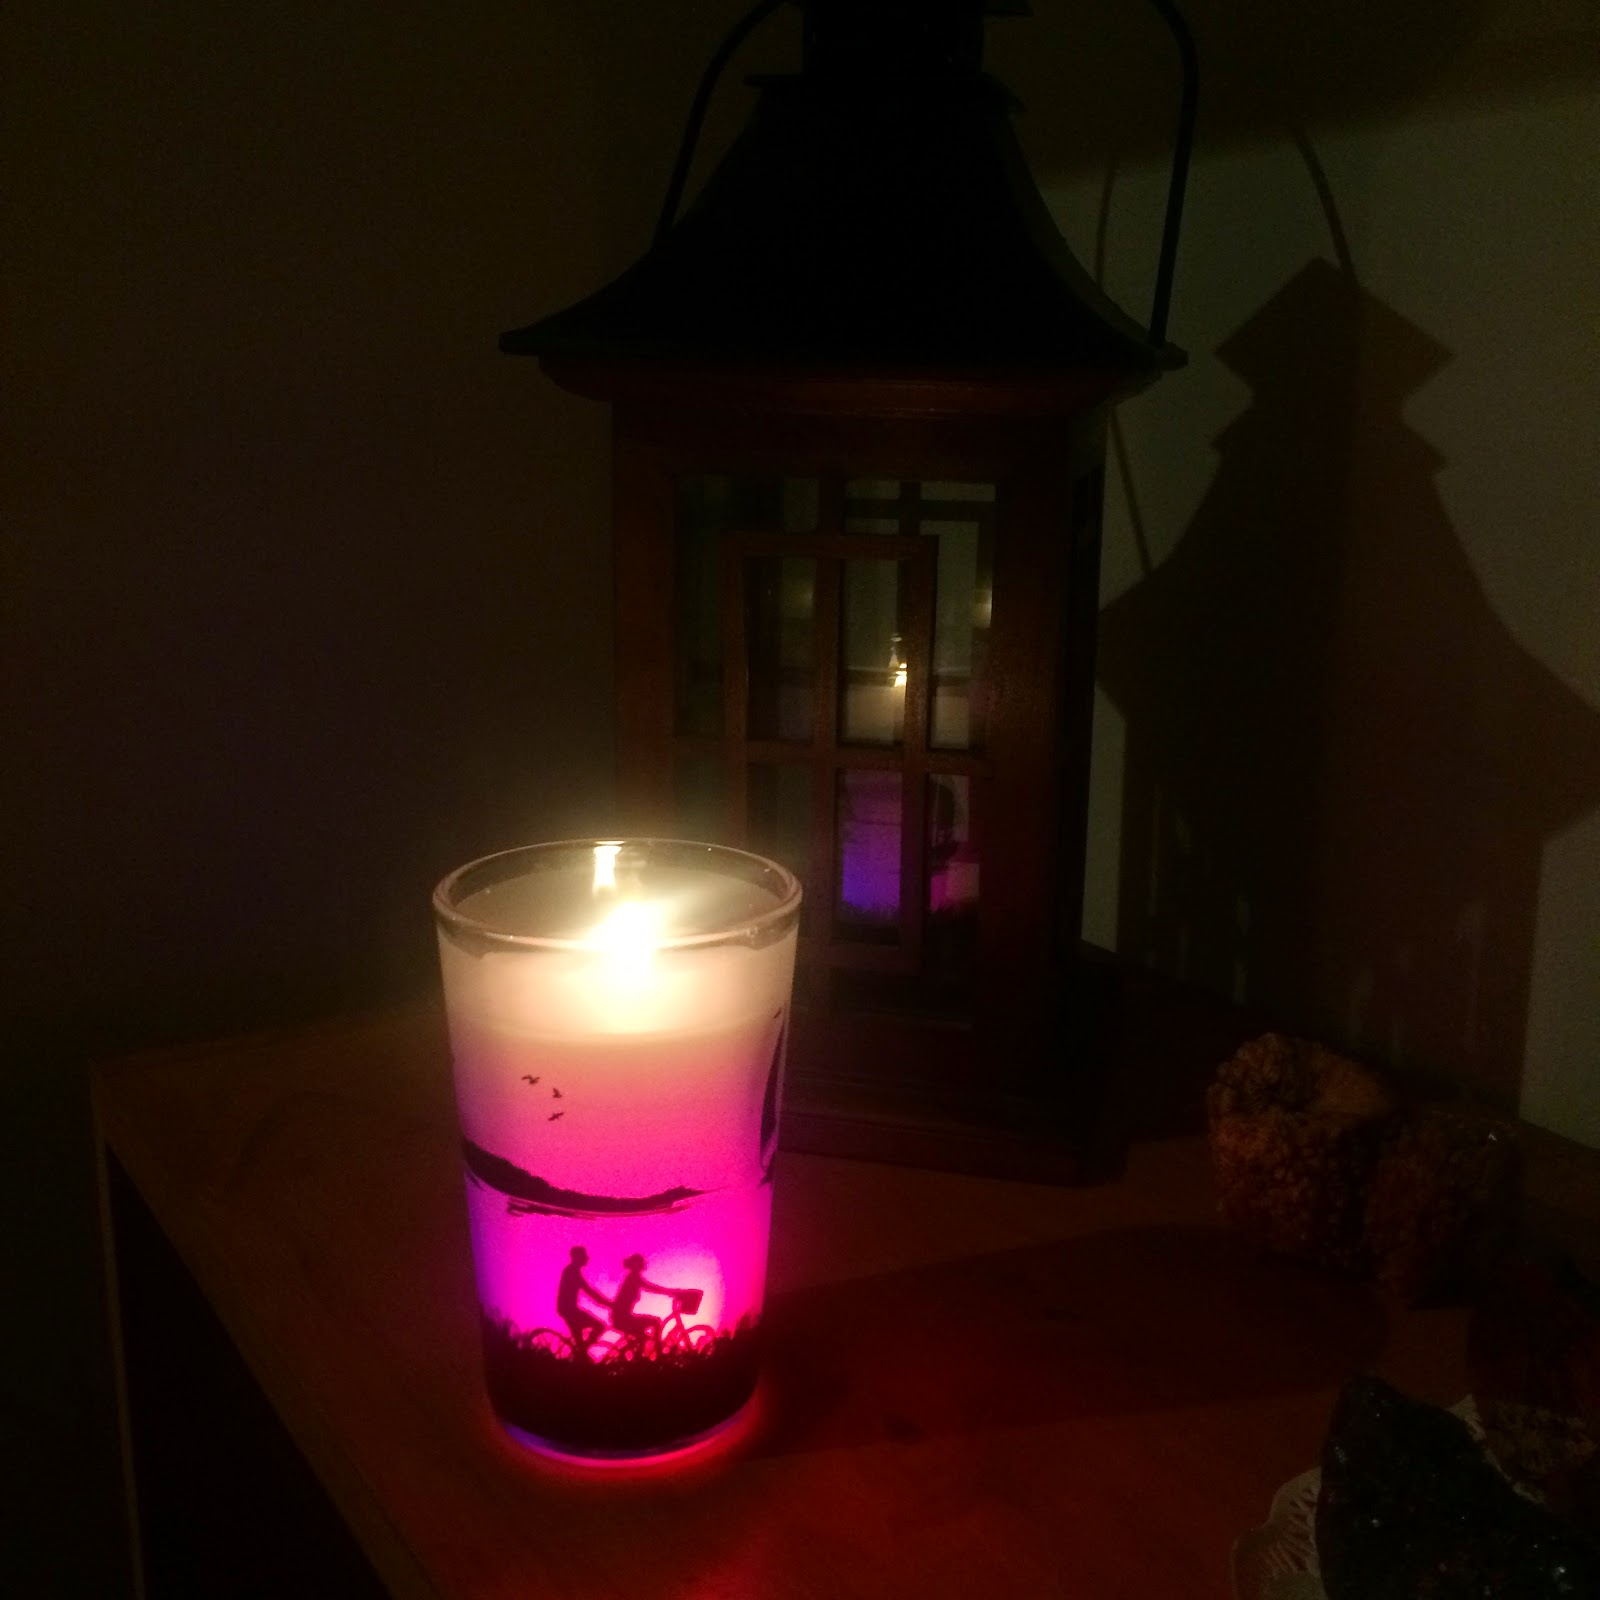 Air Wick Silhouettes scented candle